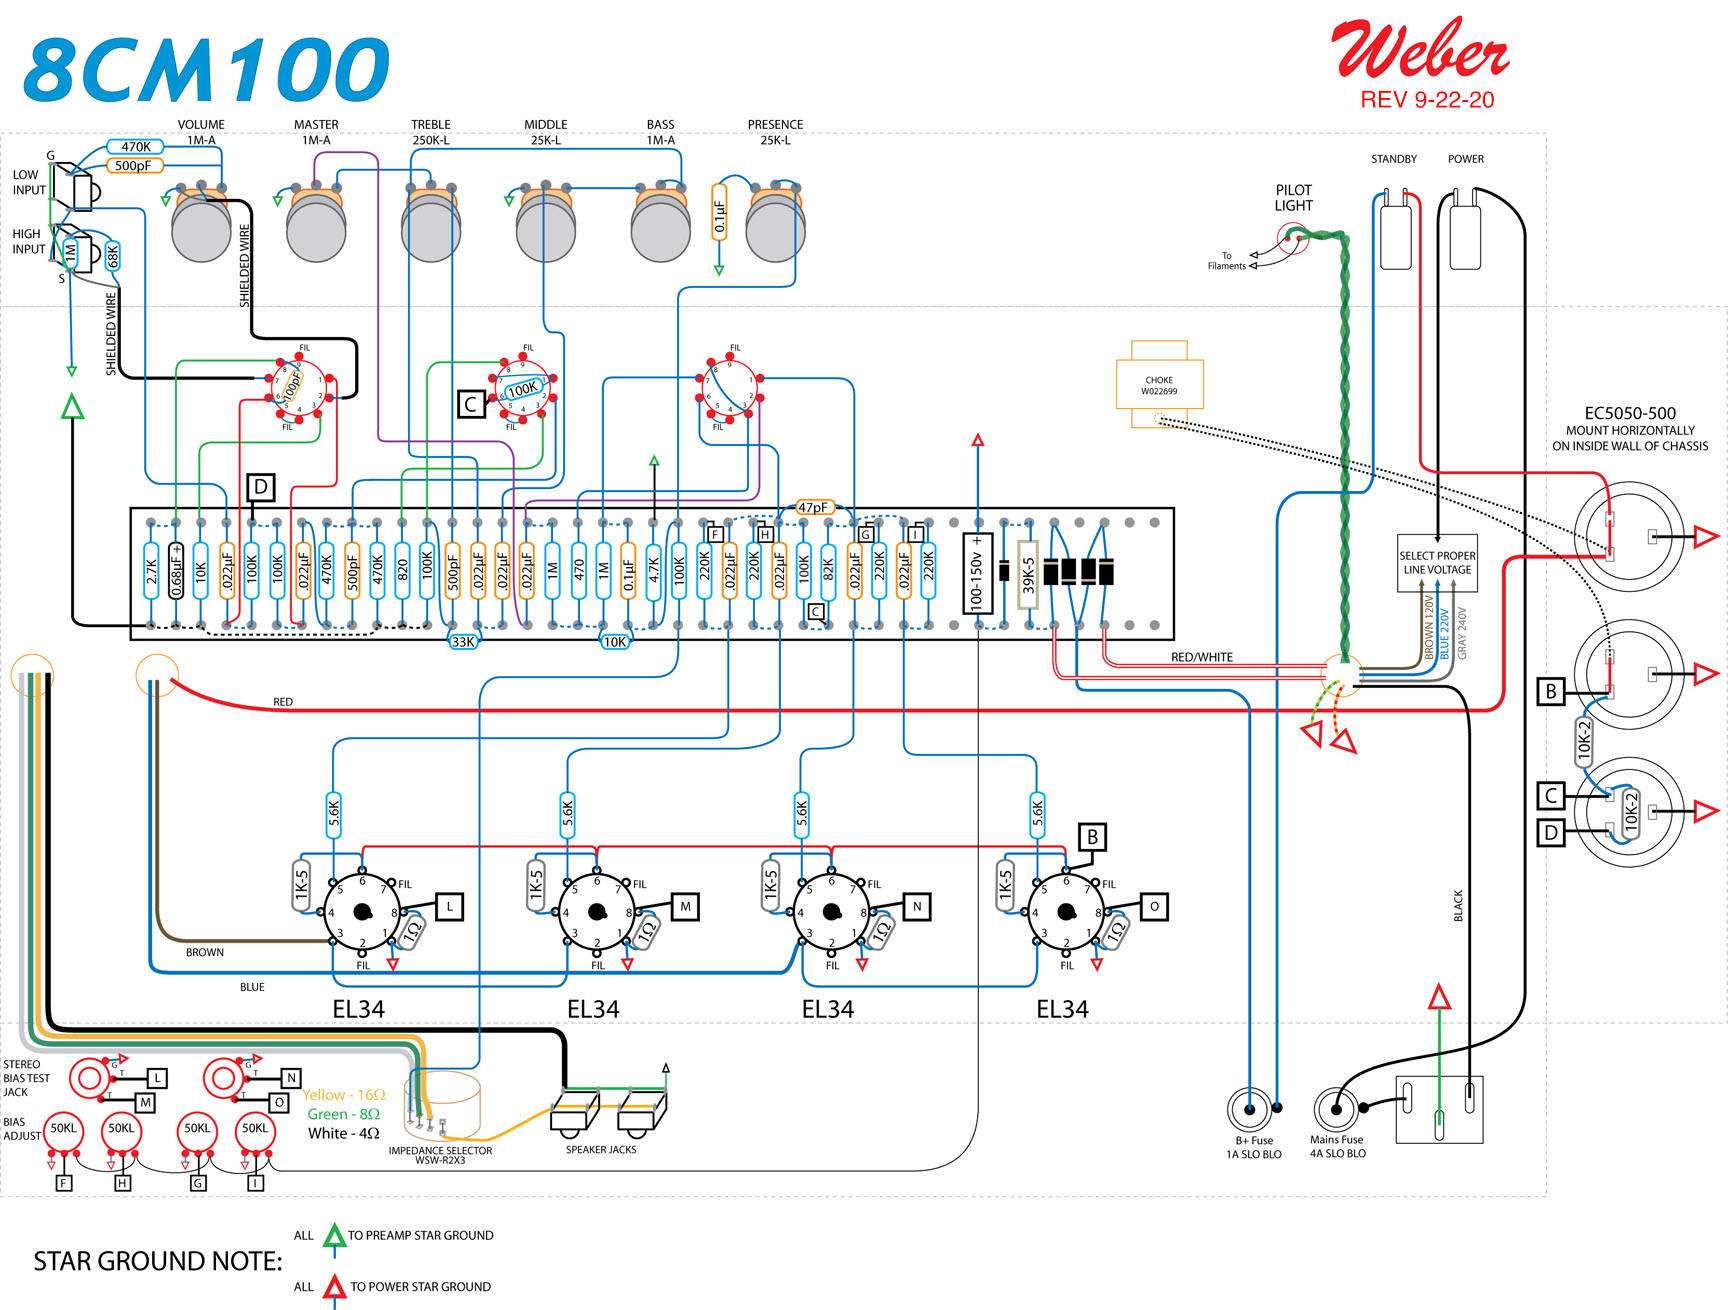 8CM100 Amp Kit on 5e3 schematic, block diagram, slo-100 schematic, marshall schematic, jtm45 schematic, circuit diagram, ac30 schematic, irig schematic, overdrive schematic, amp schematic, bass tube preamp schematic, peavey schematic, one-line diagram, transformer schematic, tube map, piping and instrumentation diagram, soldano schematic, bassman schematic, zvex sho schematic, guitar schematic, jcm 900 schematic, 1987x schematic, fender schematic, 3pdt schematic, technical drawing, functional flow block diagram, dsl schematic,